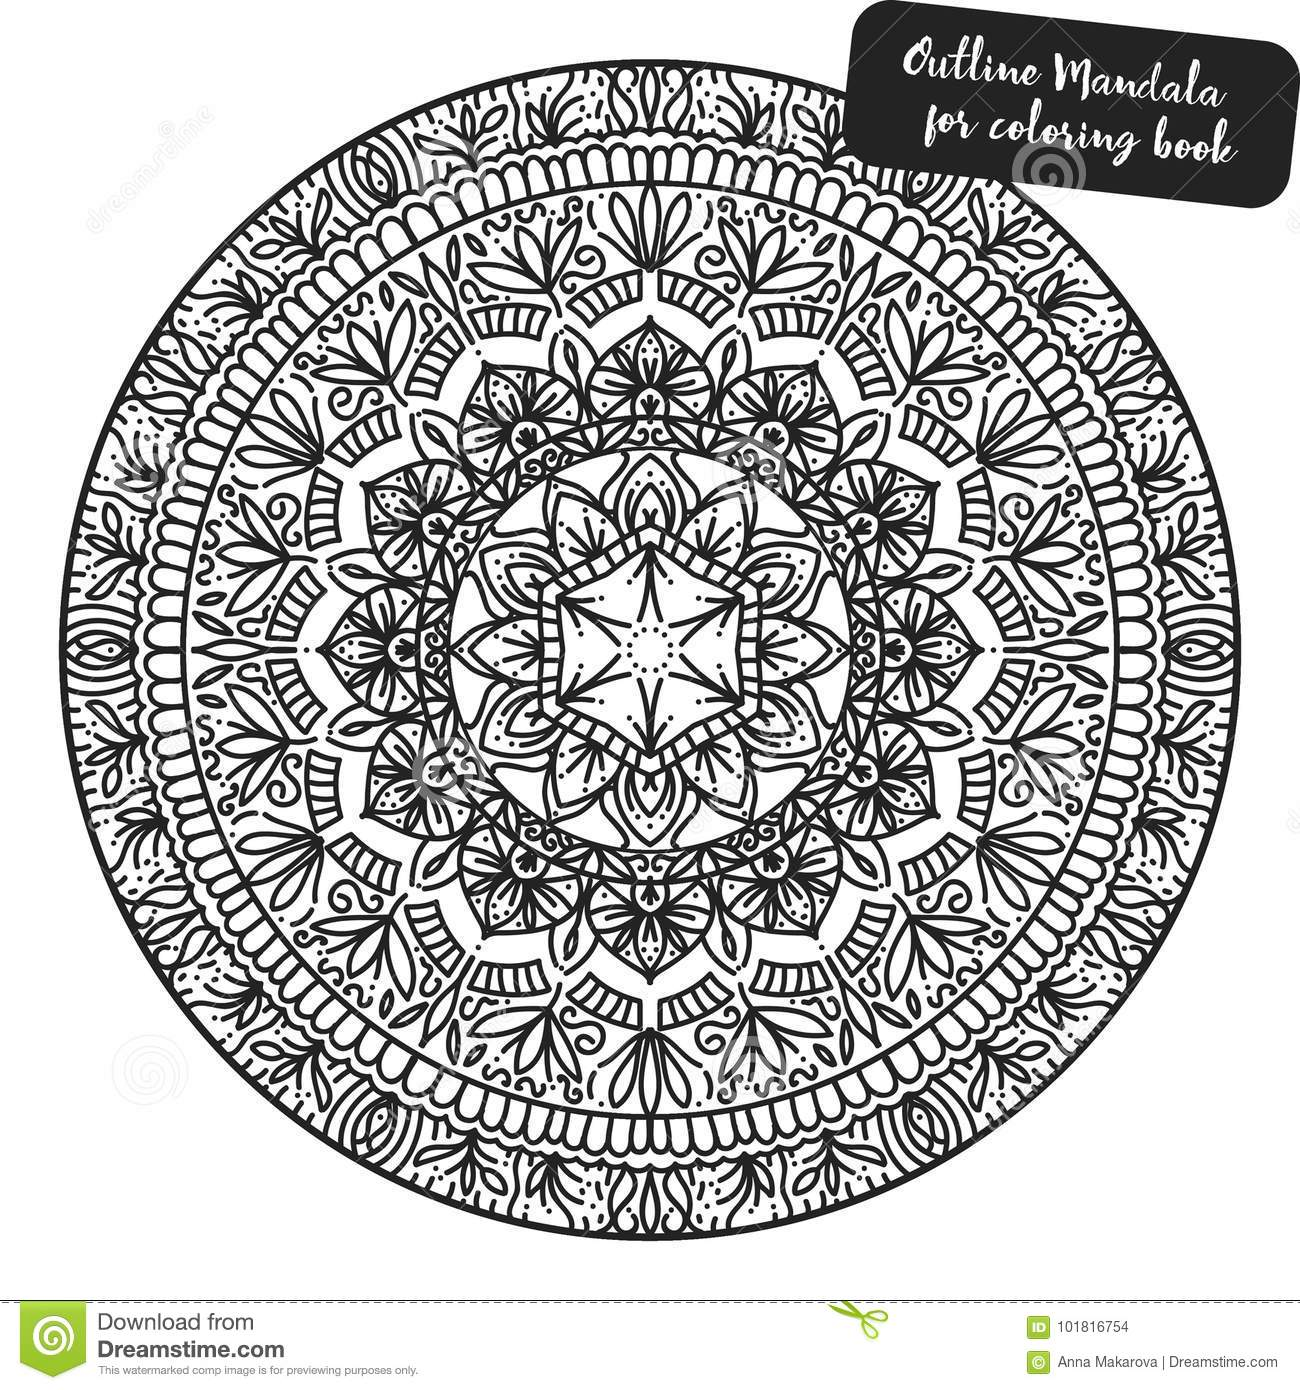 Download Outline Mandala For Coloring Book Decorative Round Ornament Anti Stress Therapy Pattern